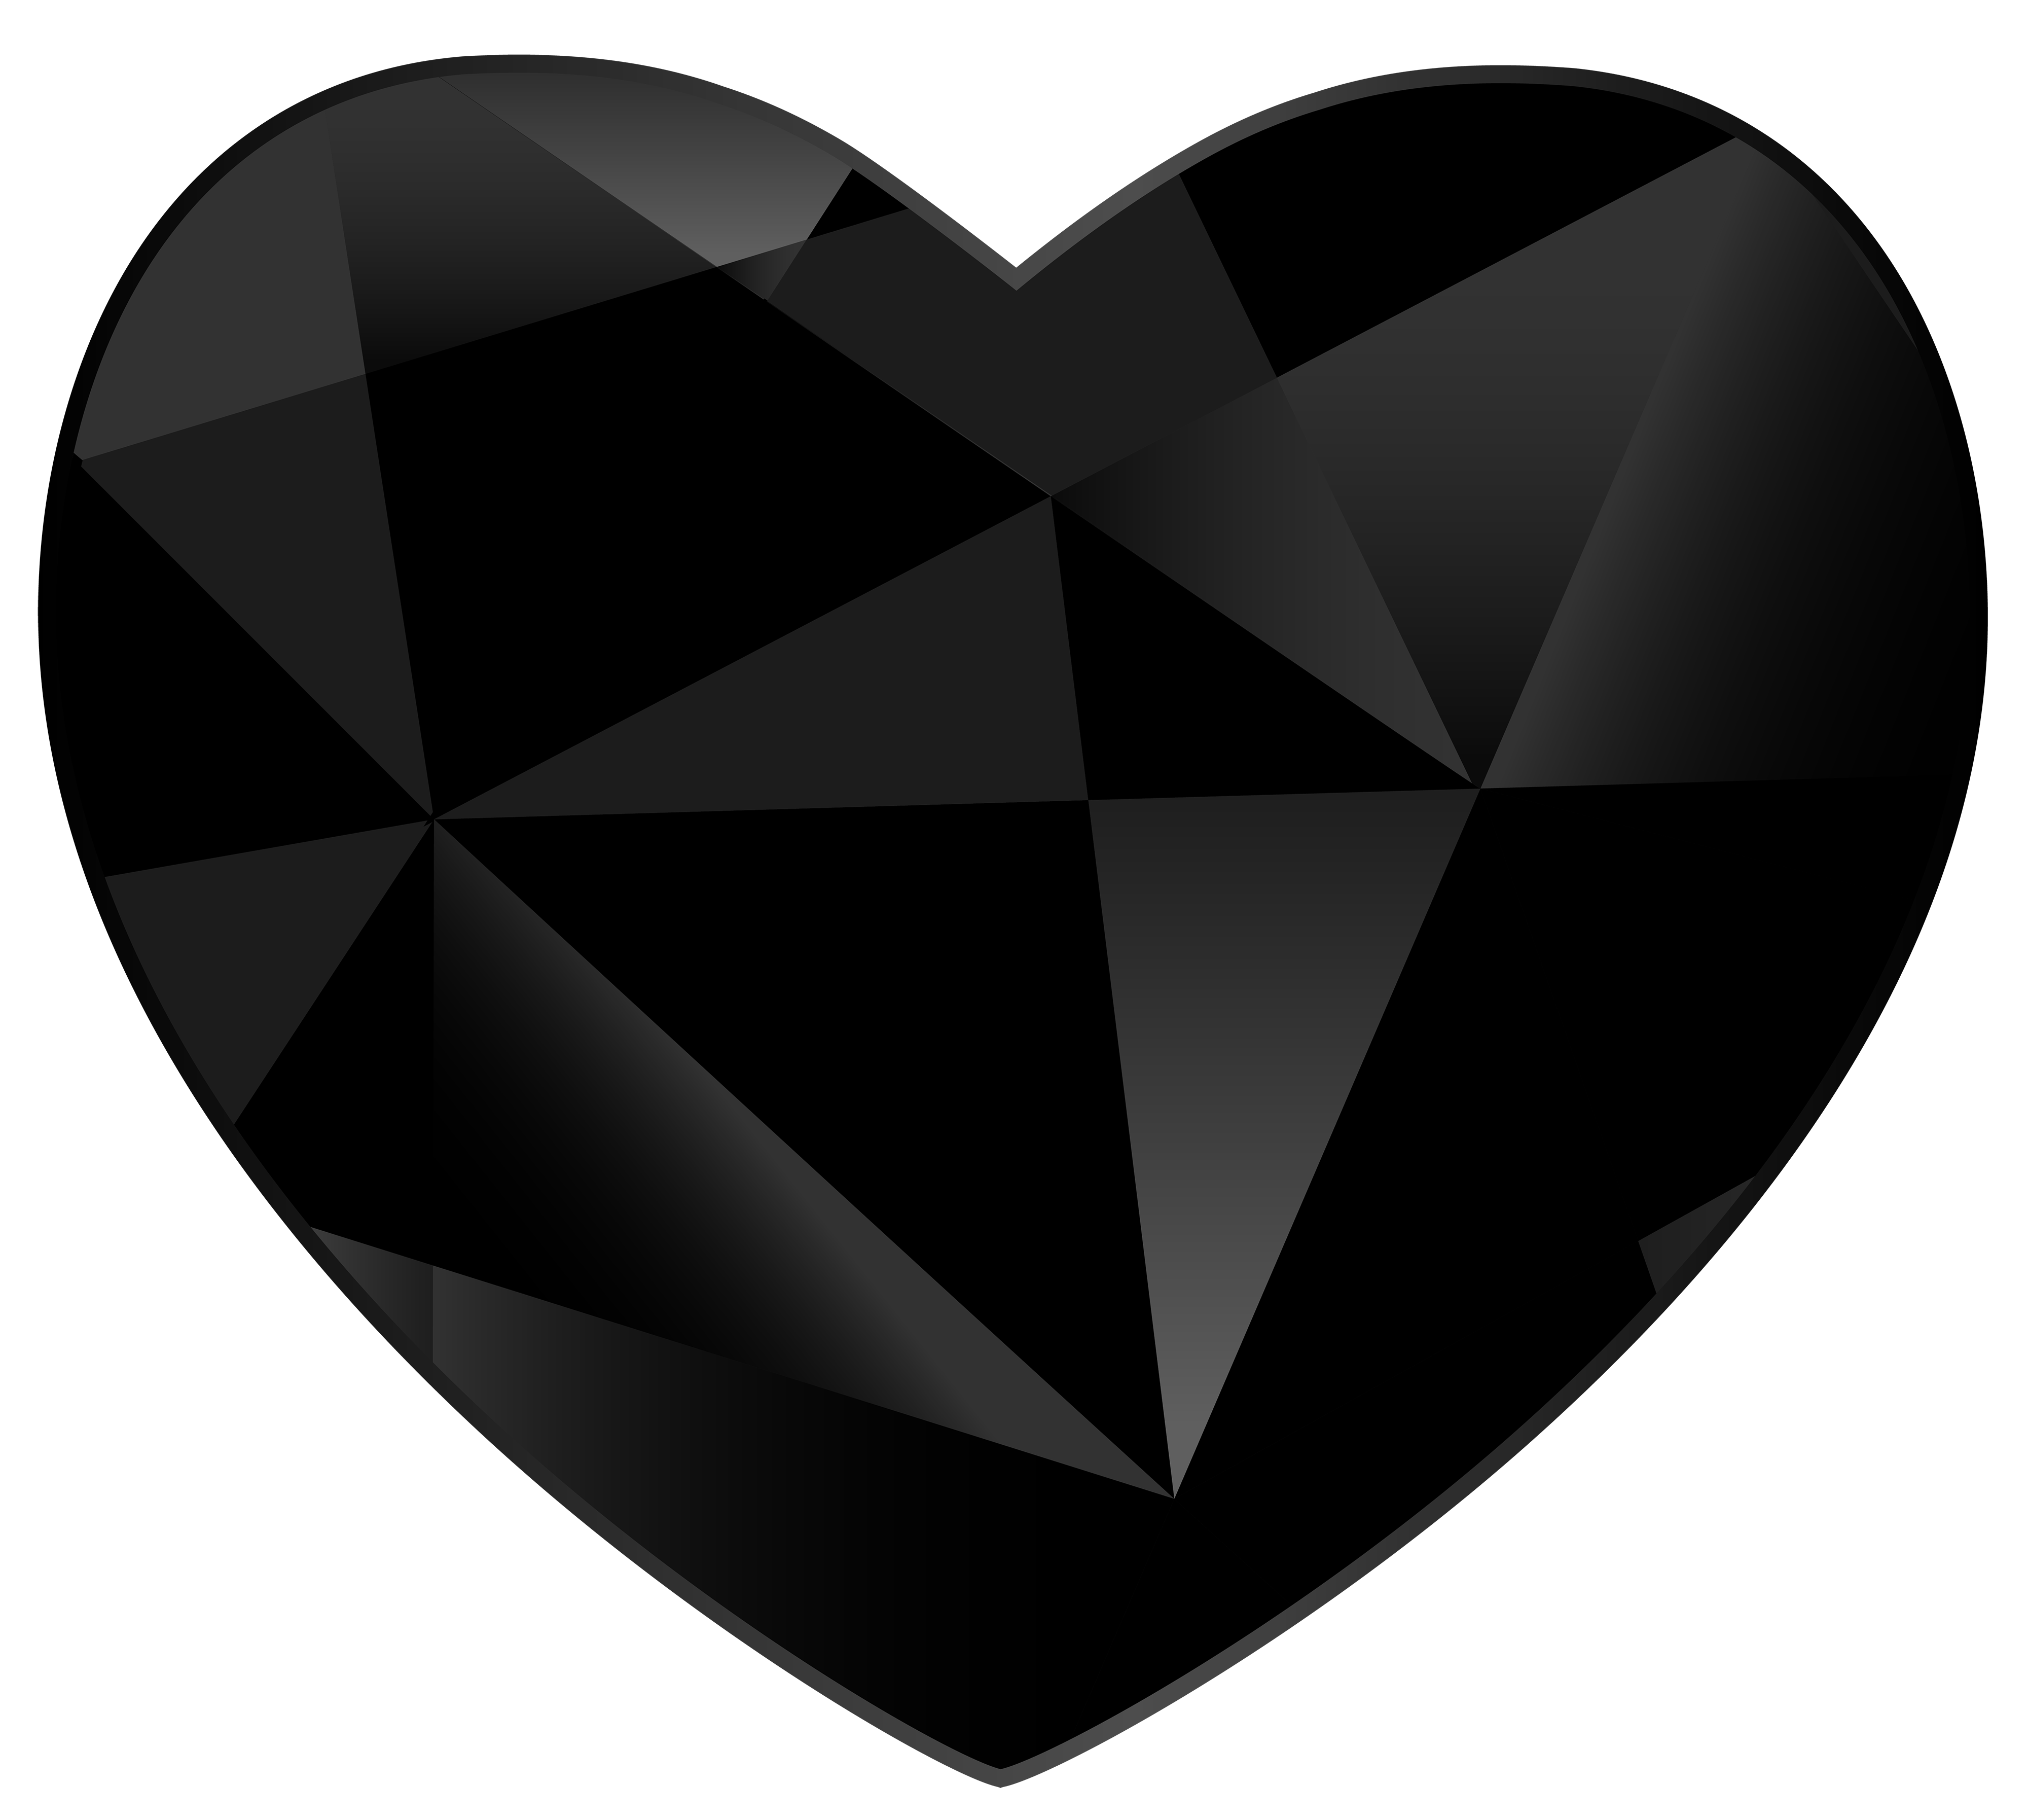 black heart png